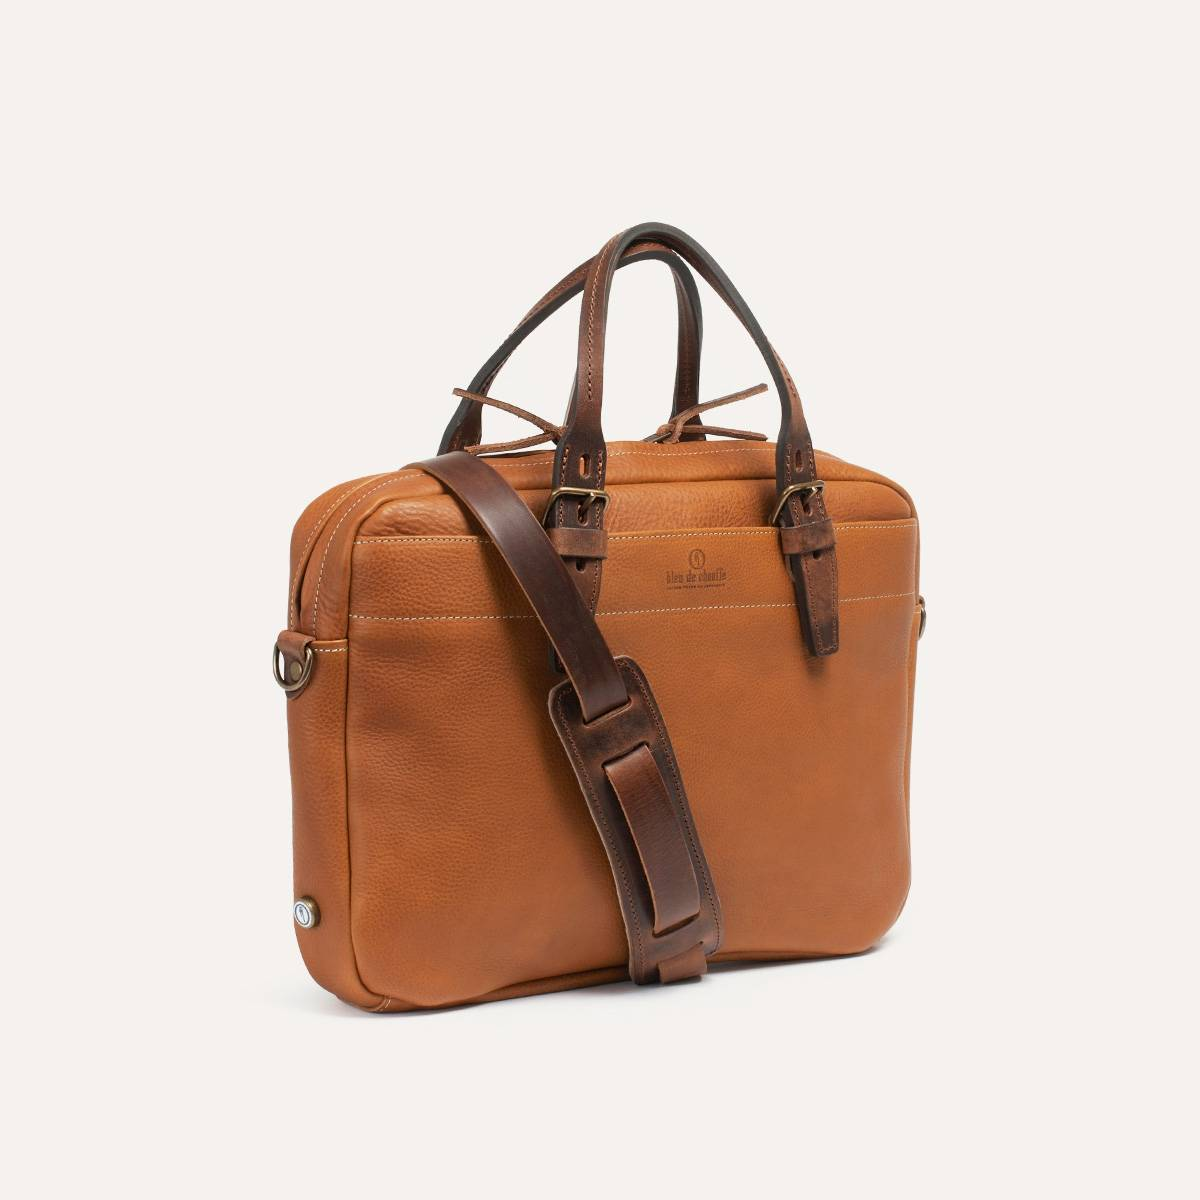 Porte Document Cuir Homme Sac Business Folder Pain Brûlé